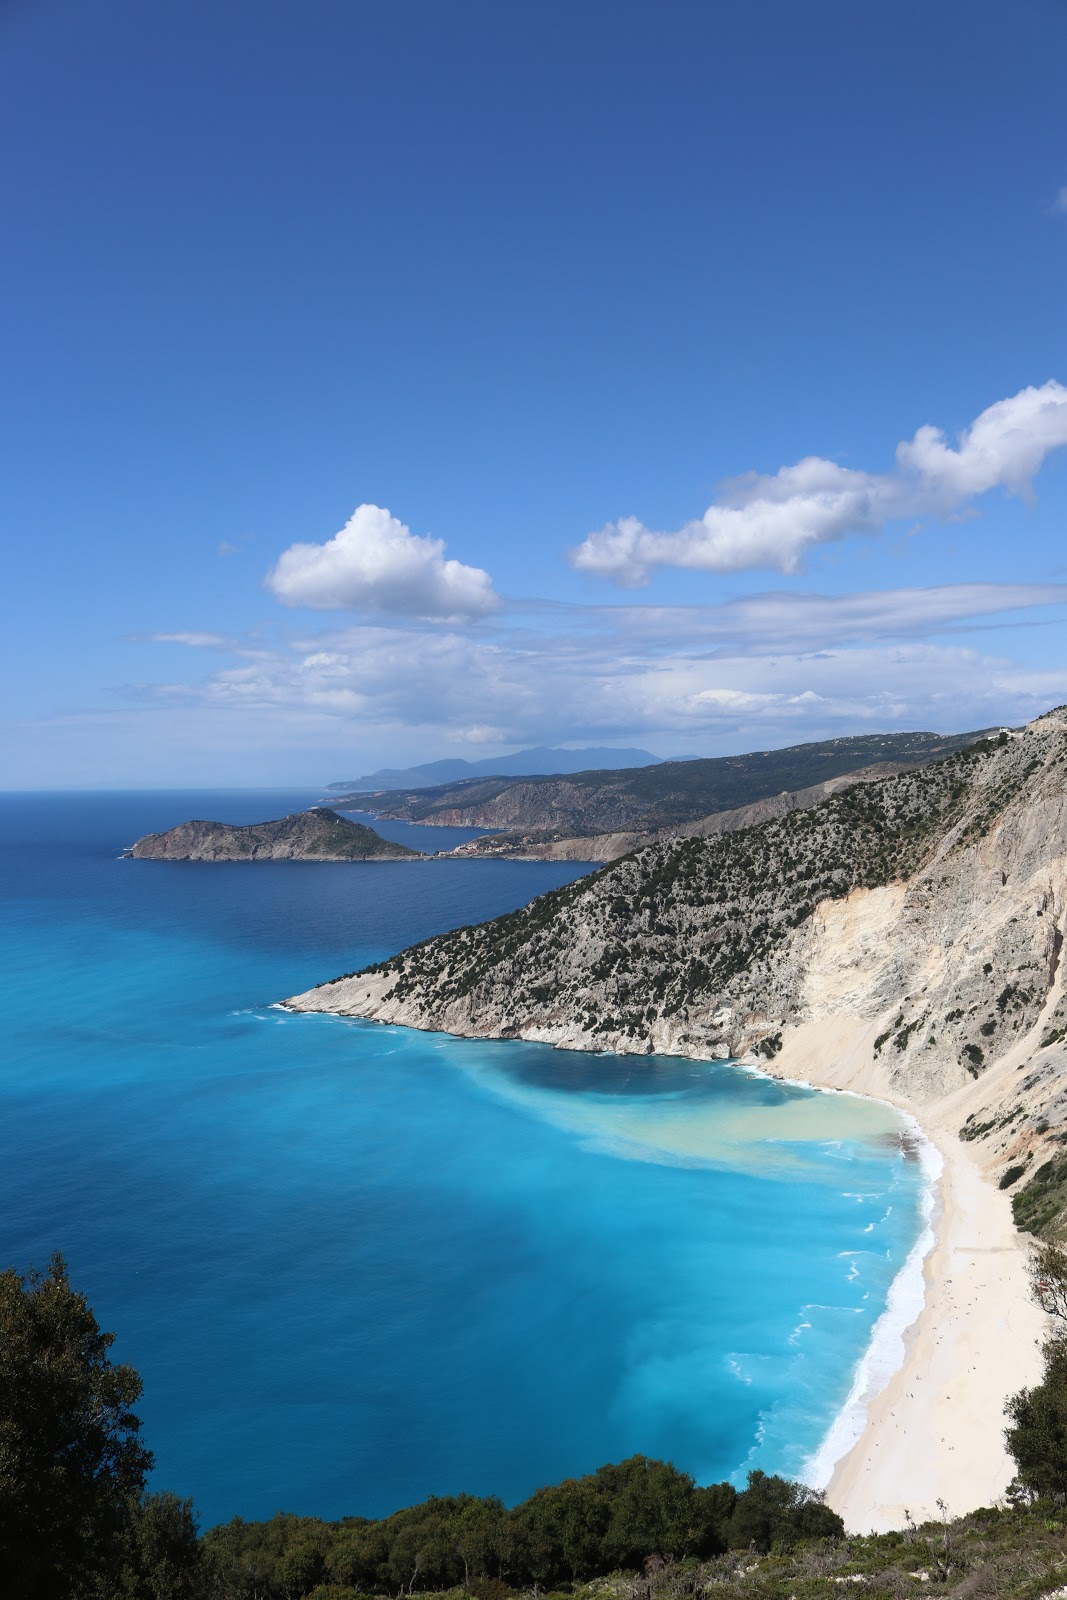 Myrtos Beach, White sand and turquoise waters